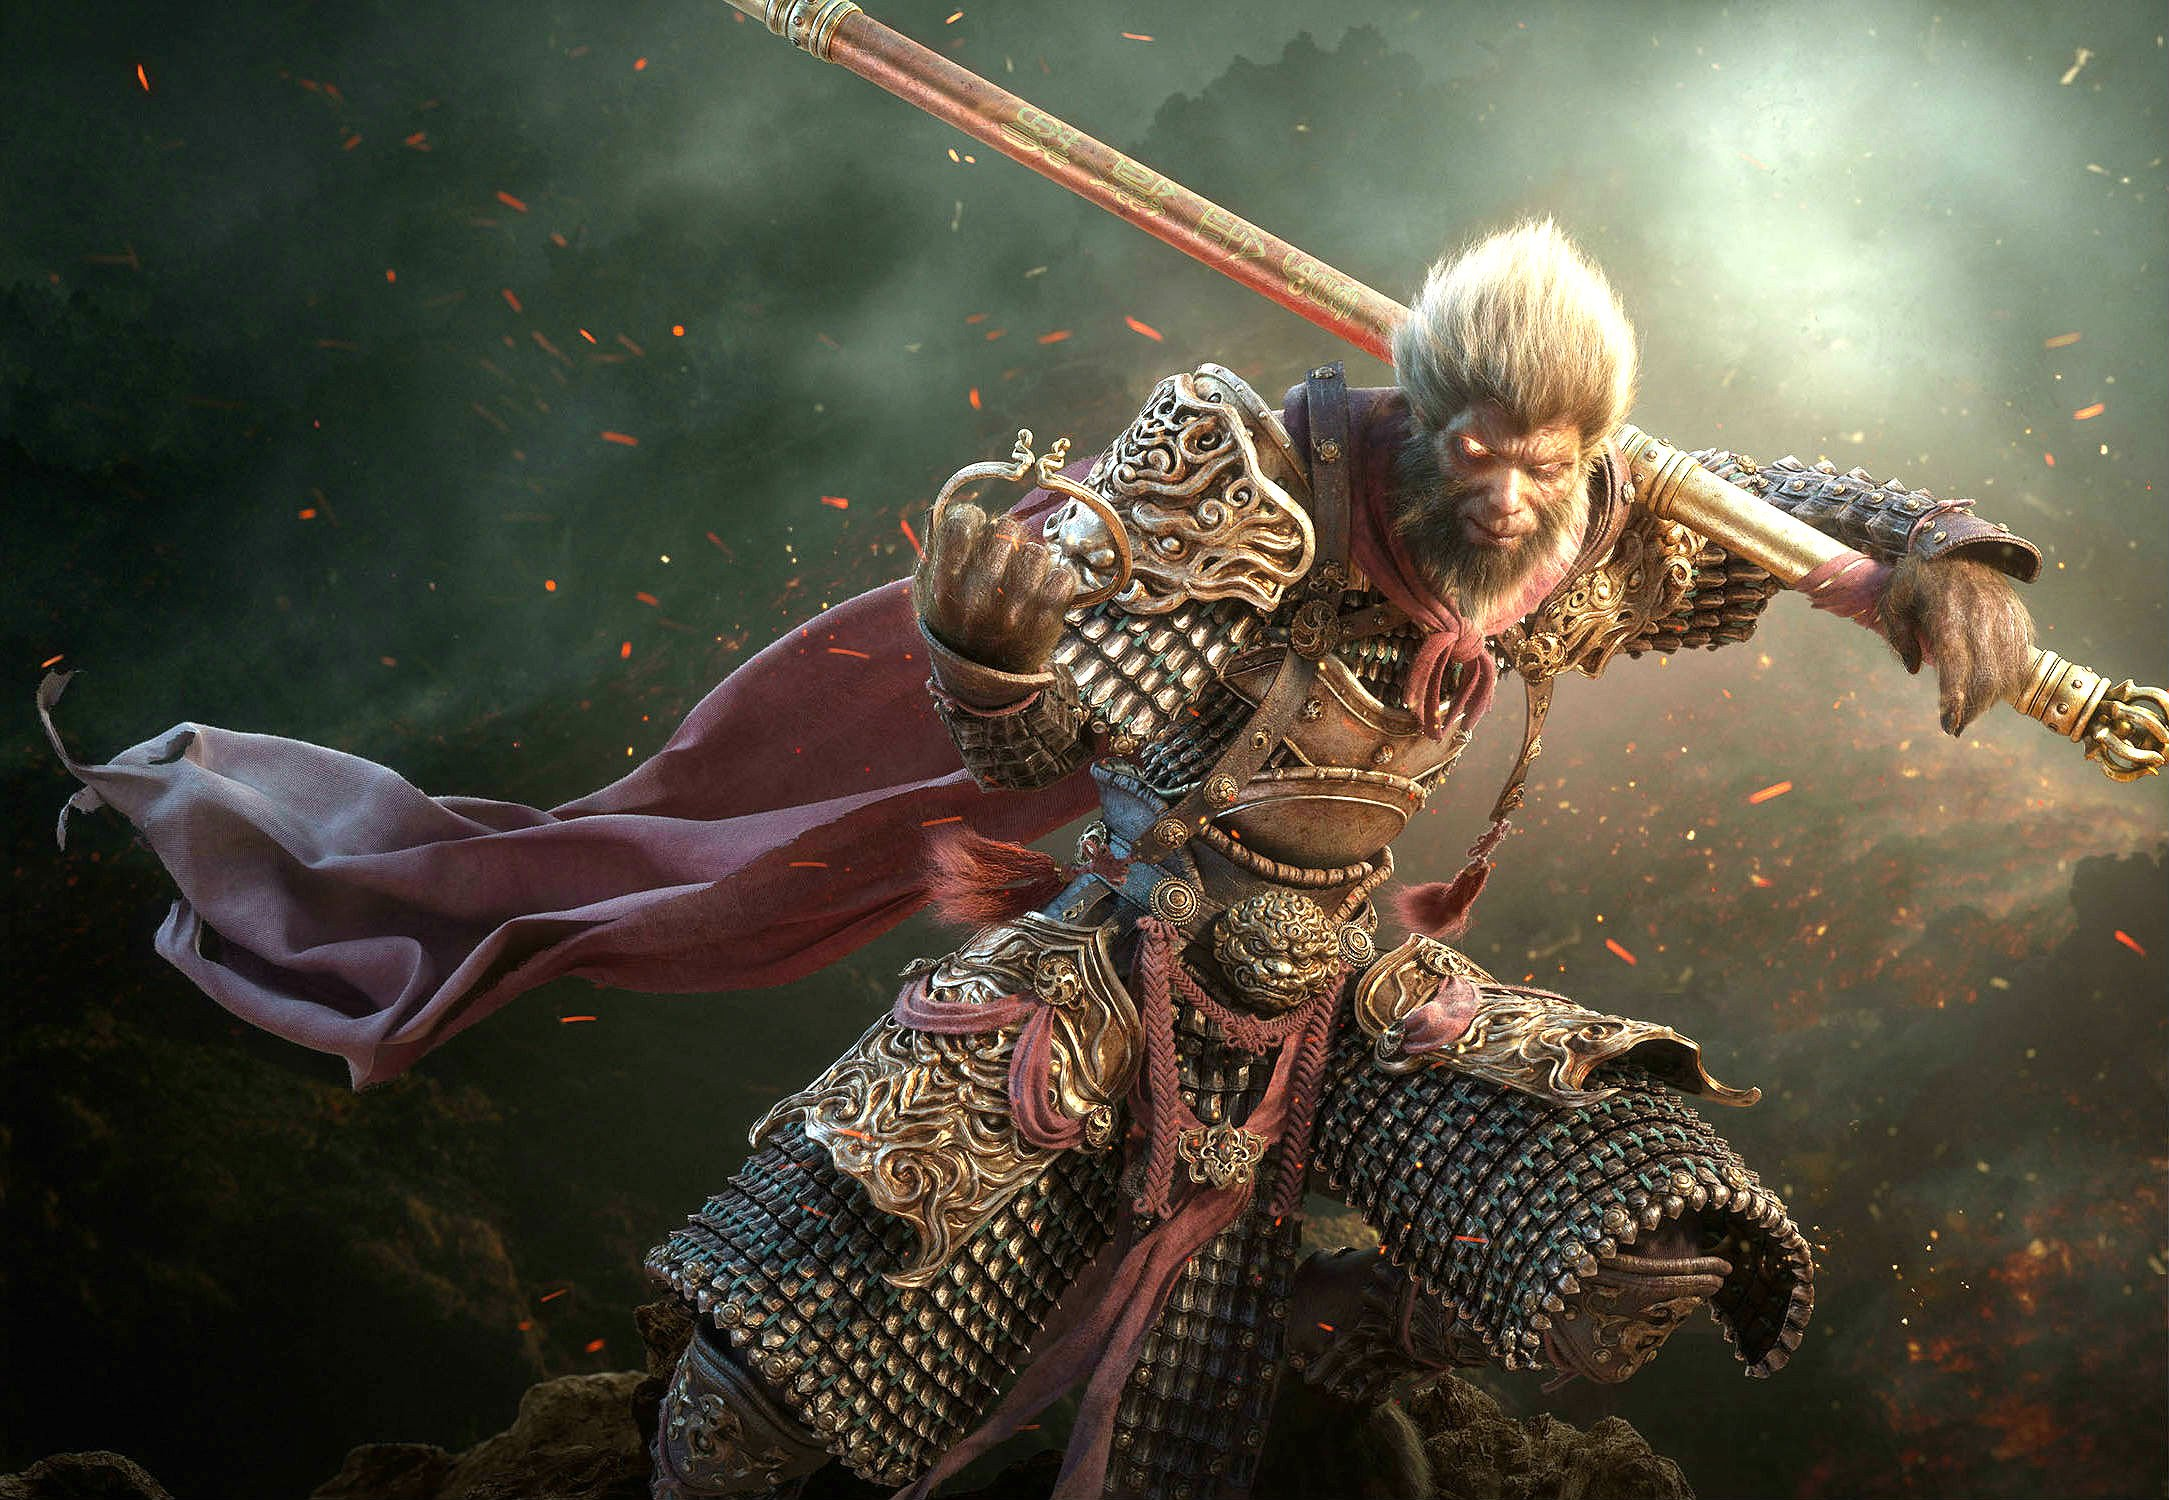 Monkey King Action Adventure Fantasy Martial Fighting Wallpaper